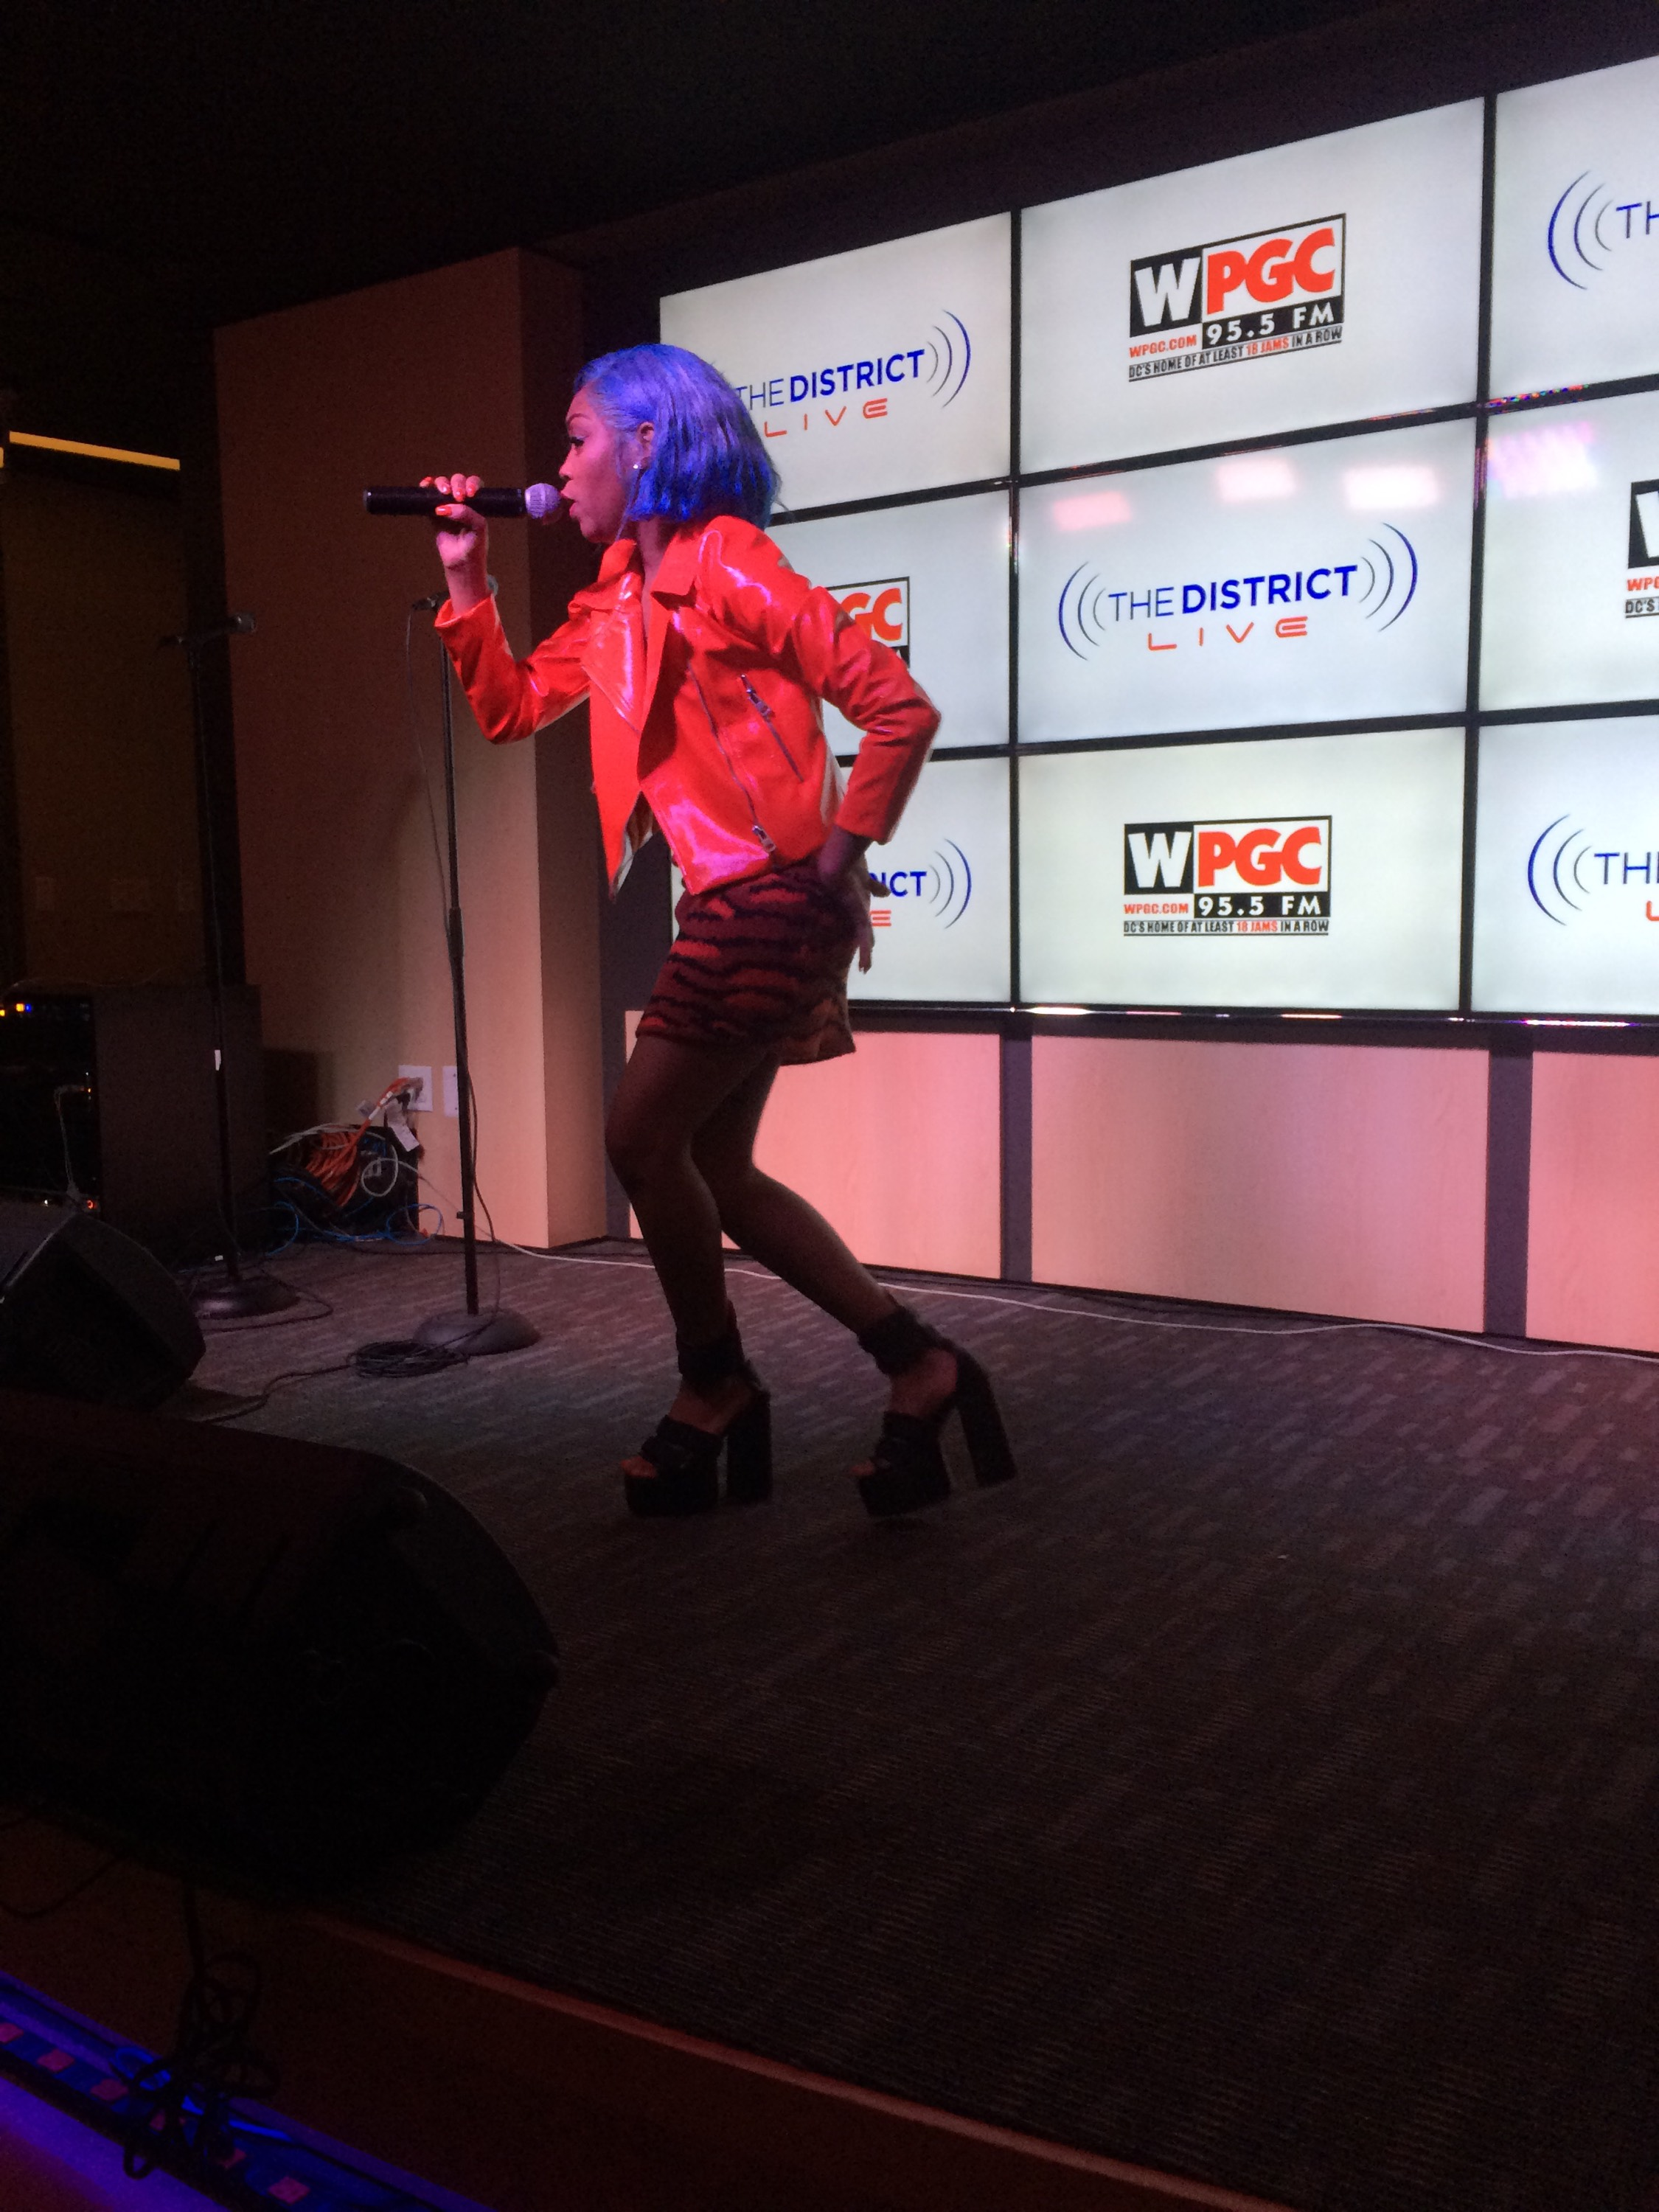 WPGC sound stage performance